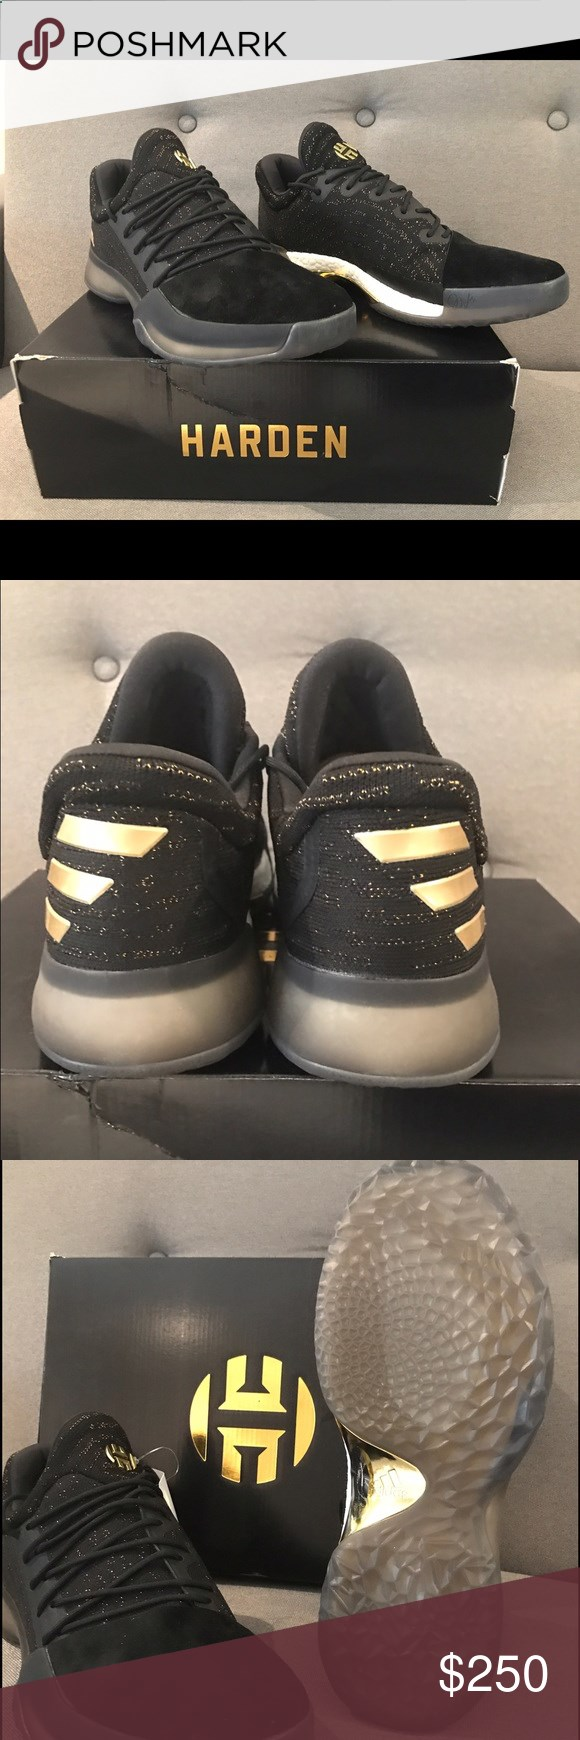 best website b899c 31b16 Adidas James Harden Vol.1 PK DS serious inquiries only ! Adidas Shoes  Athletic Shoes